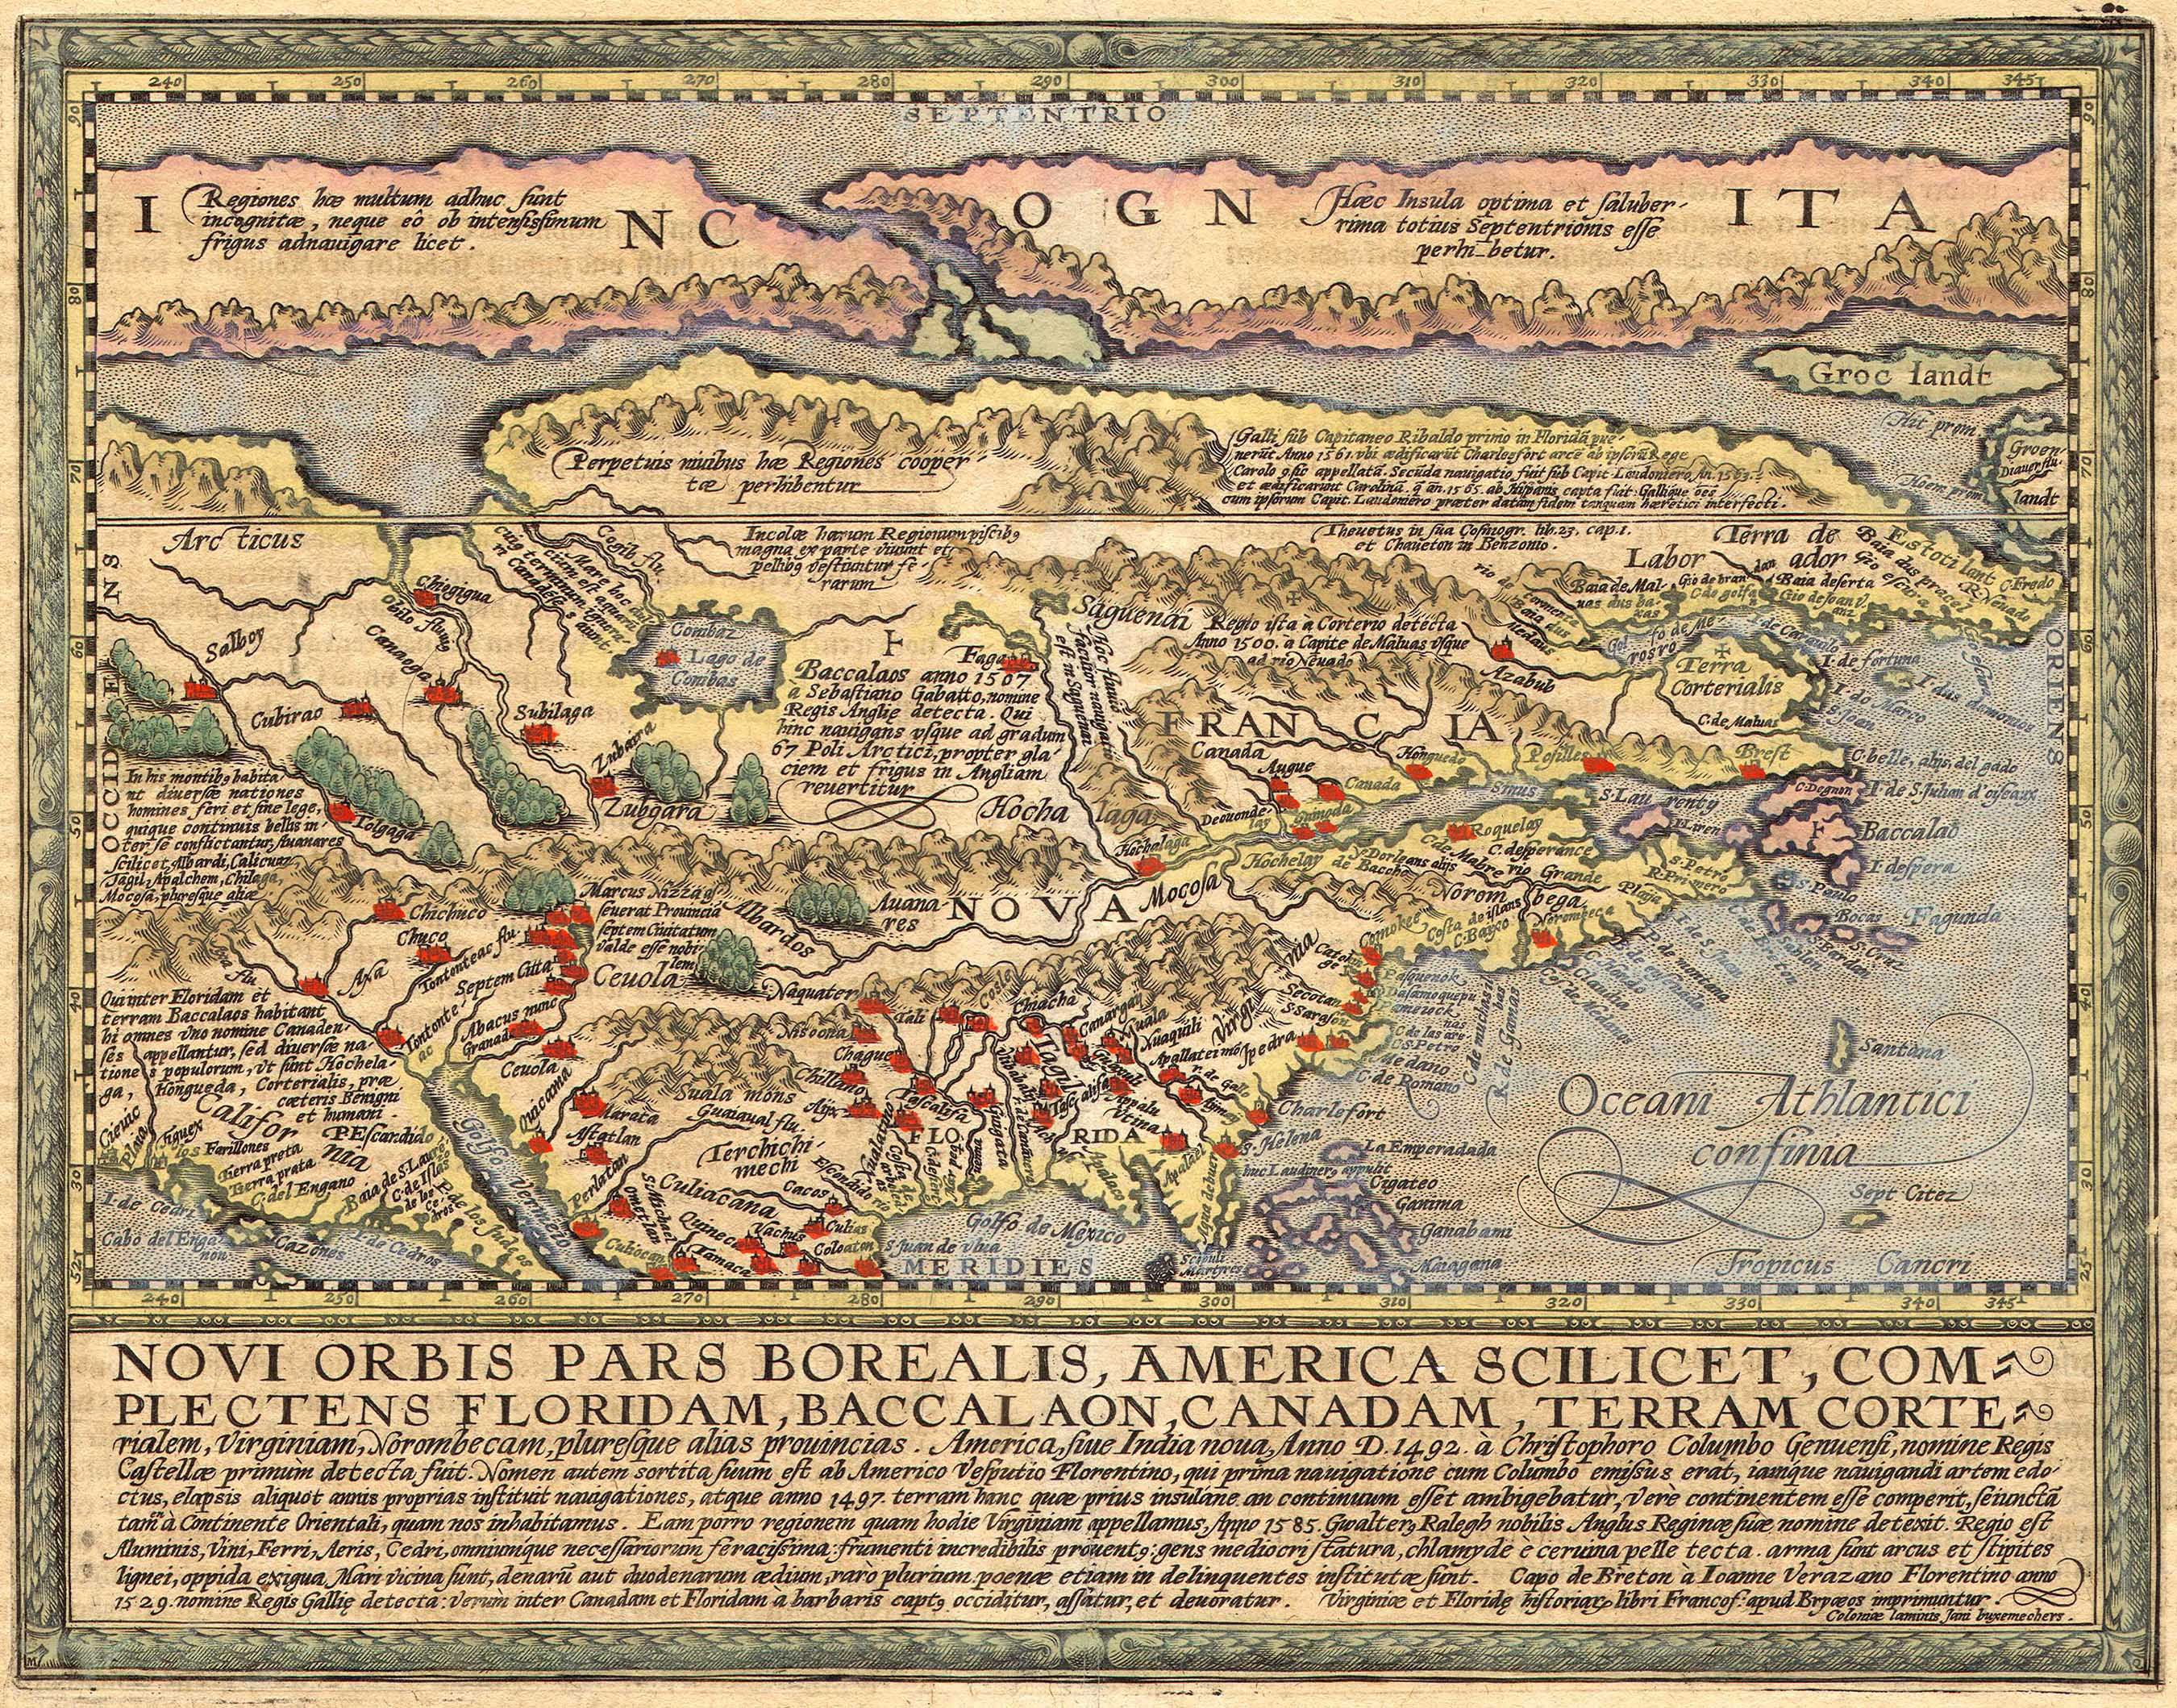 Pin by saa mani on maps pinterest explore old maps old world maps and more gumiabroncs Gallery